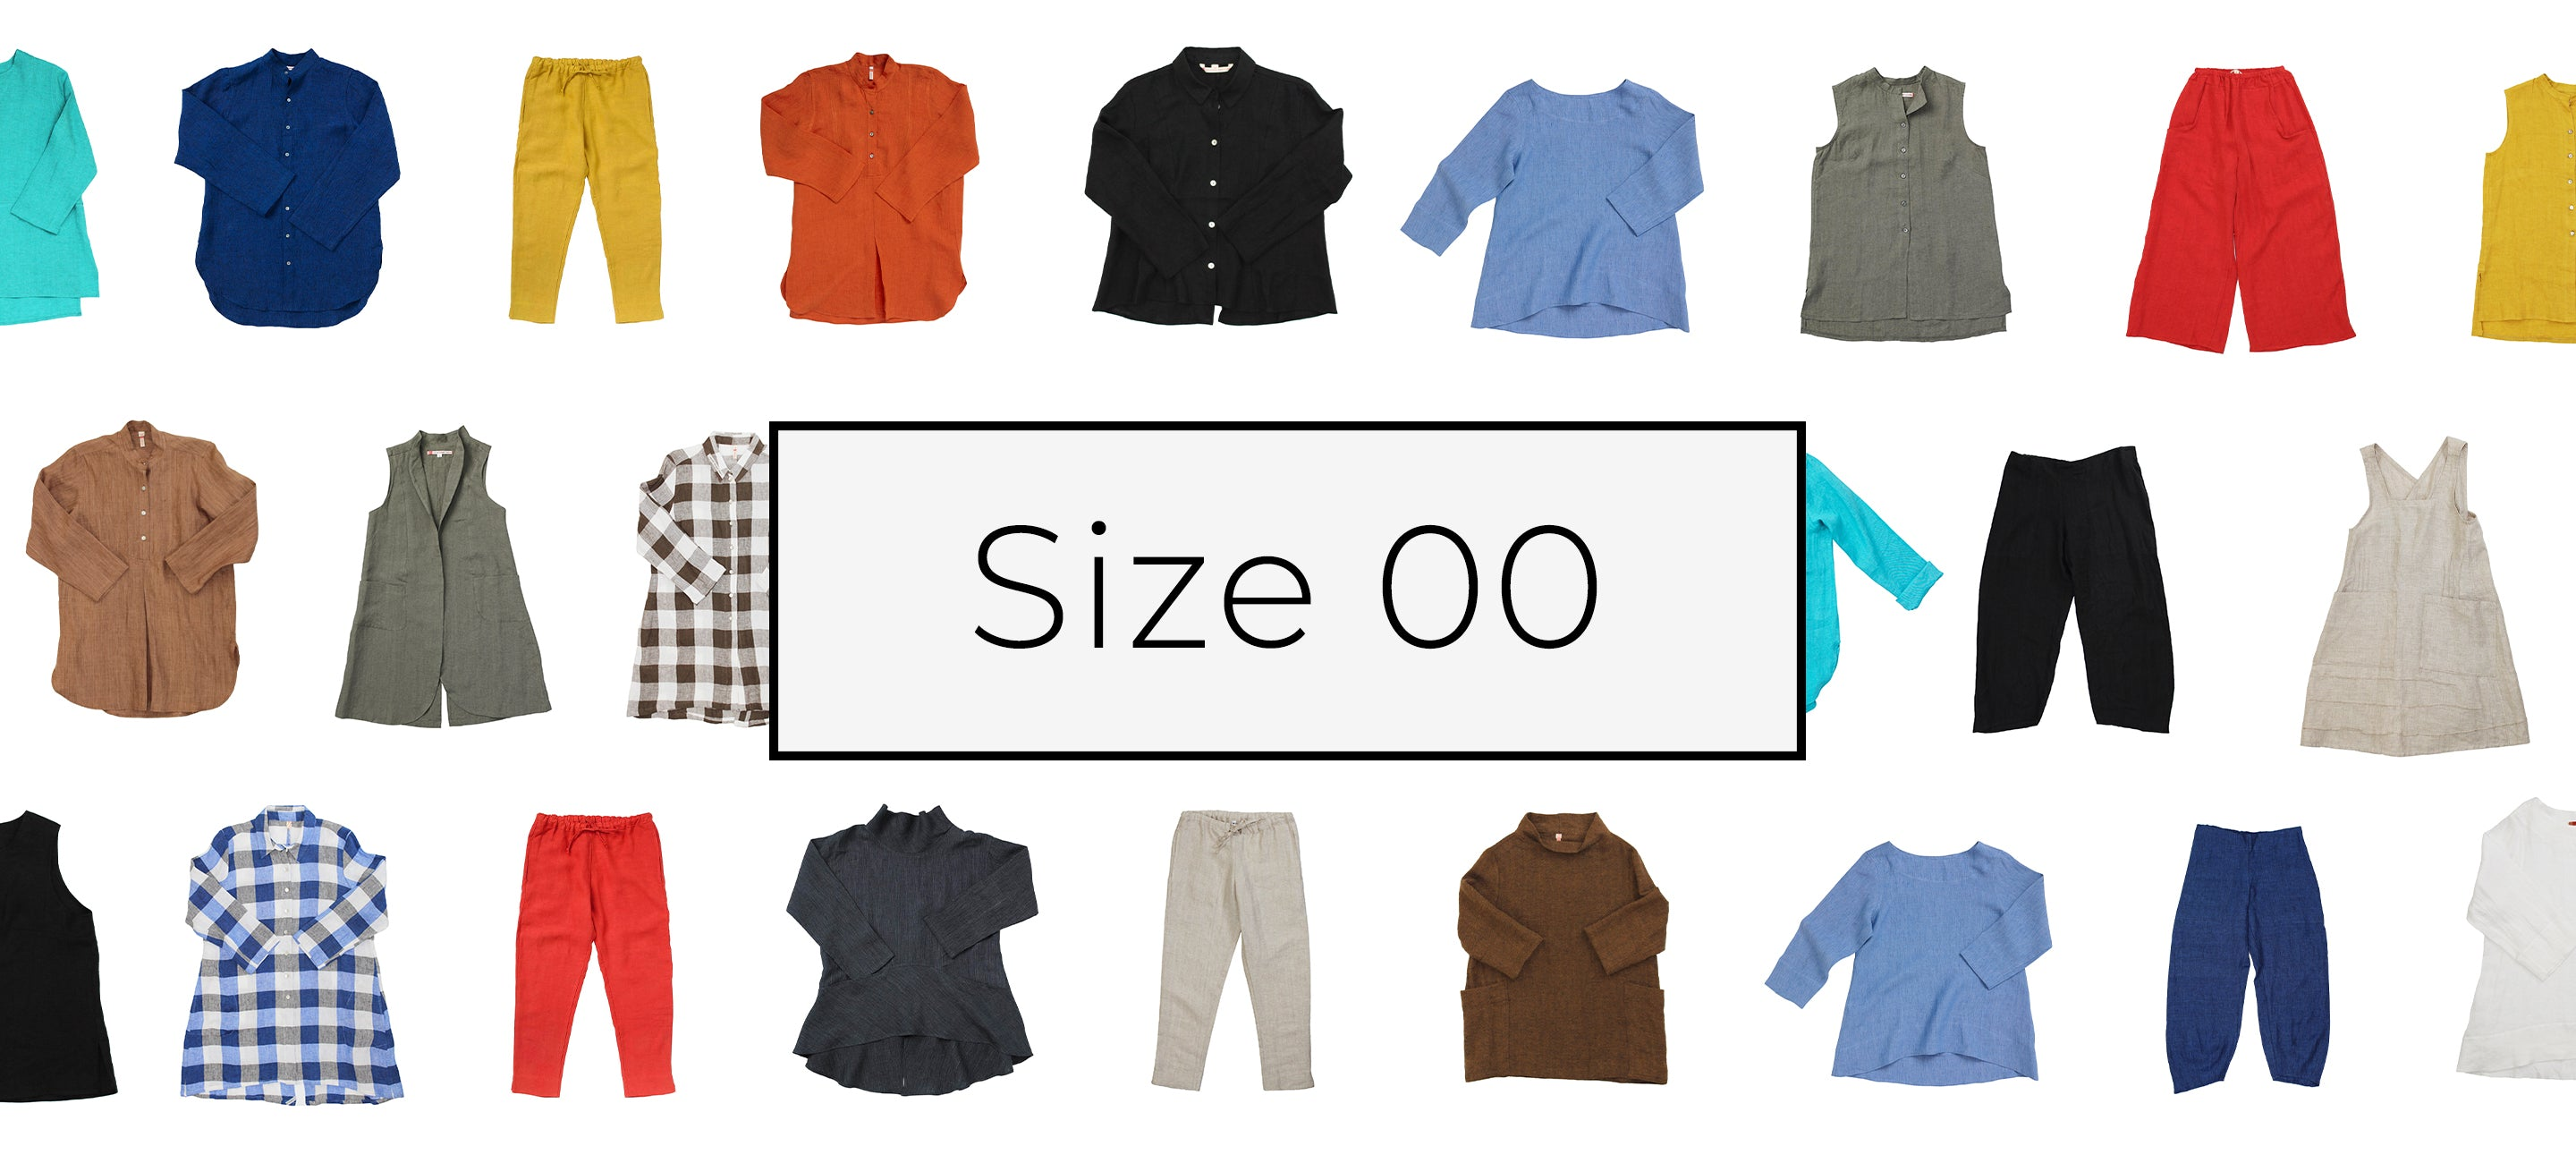 Size 00